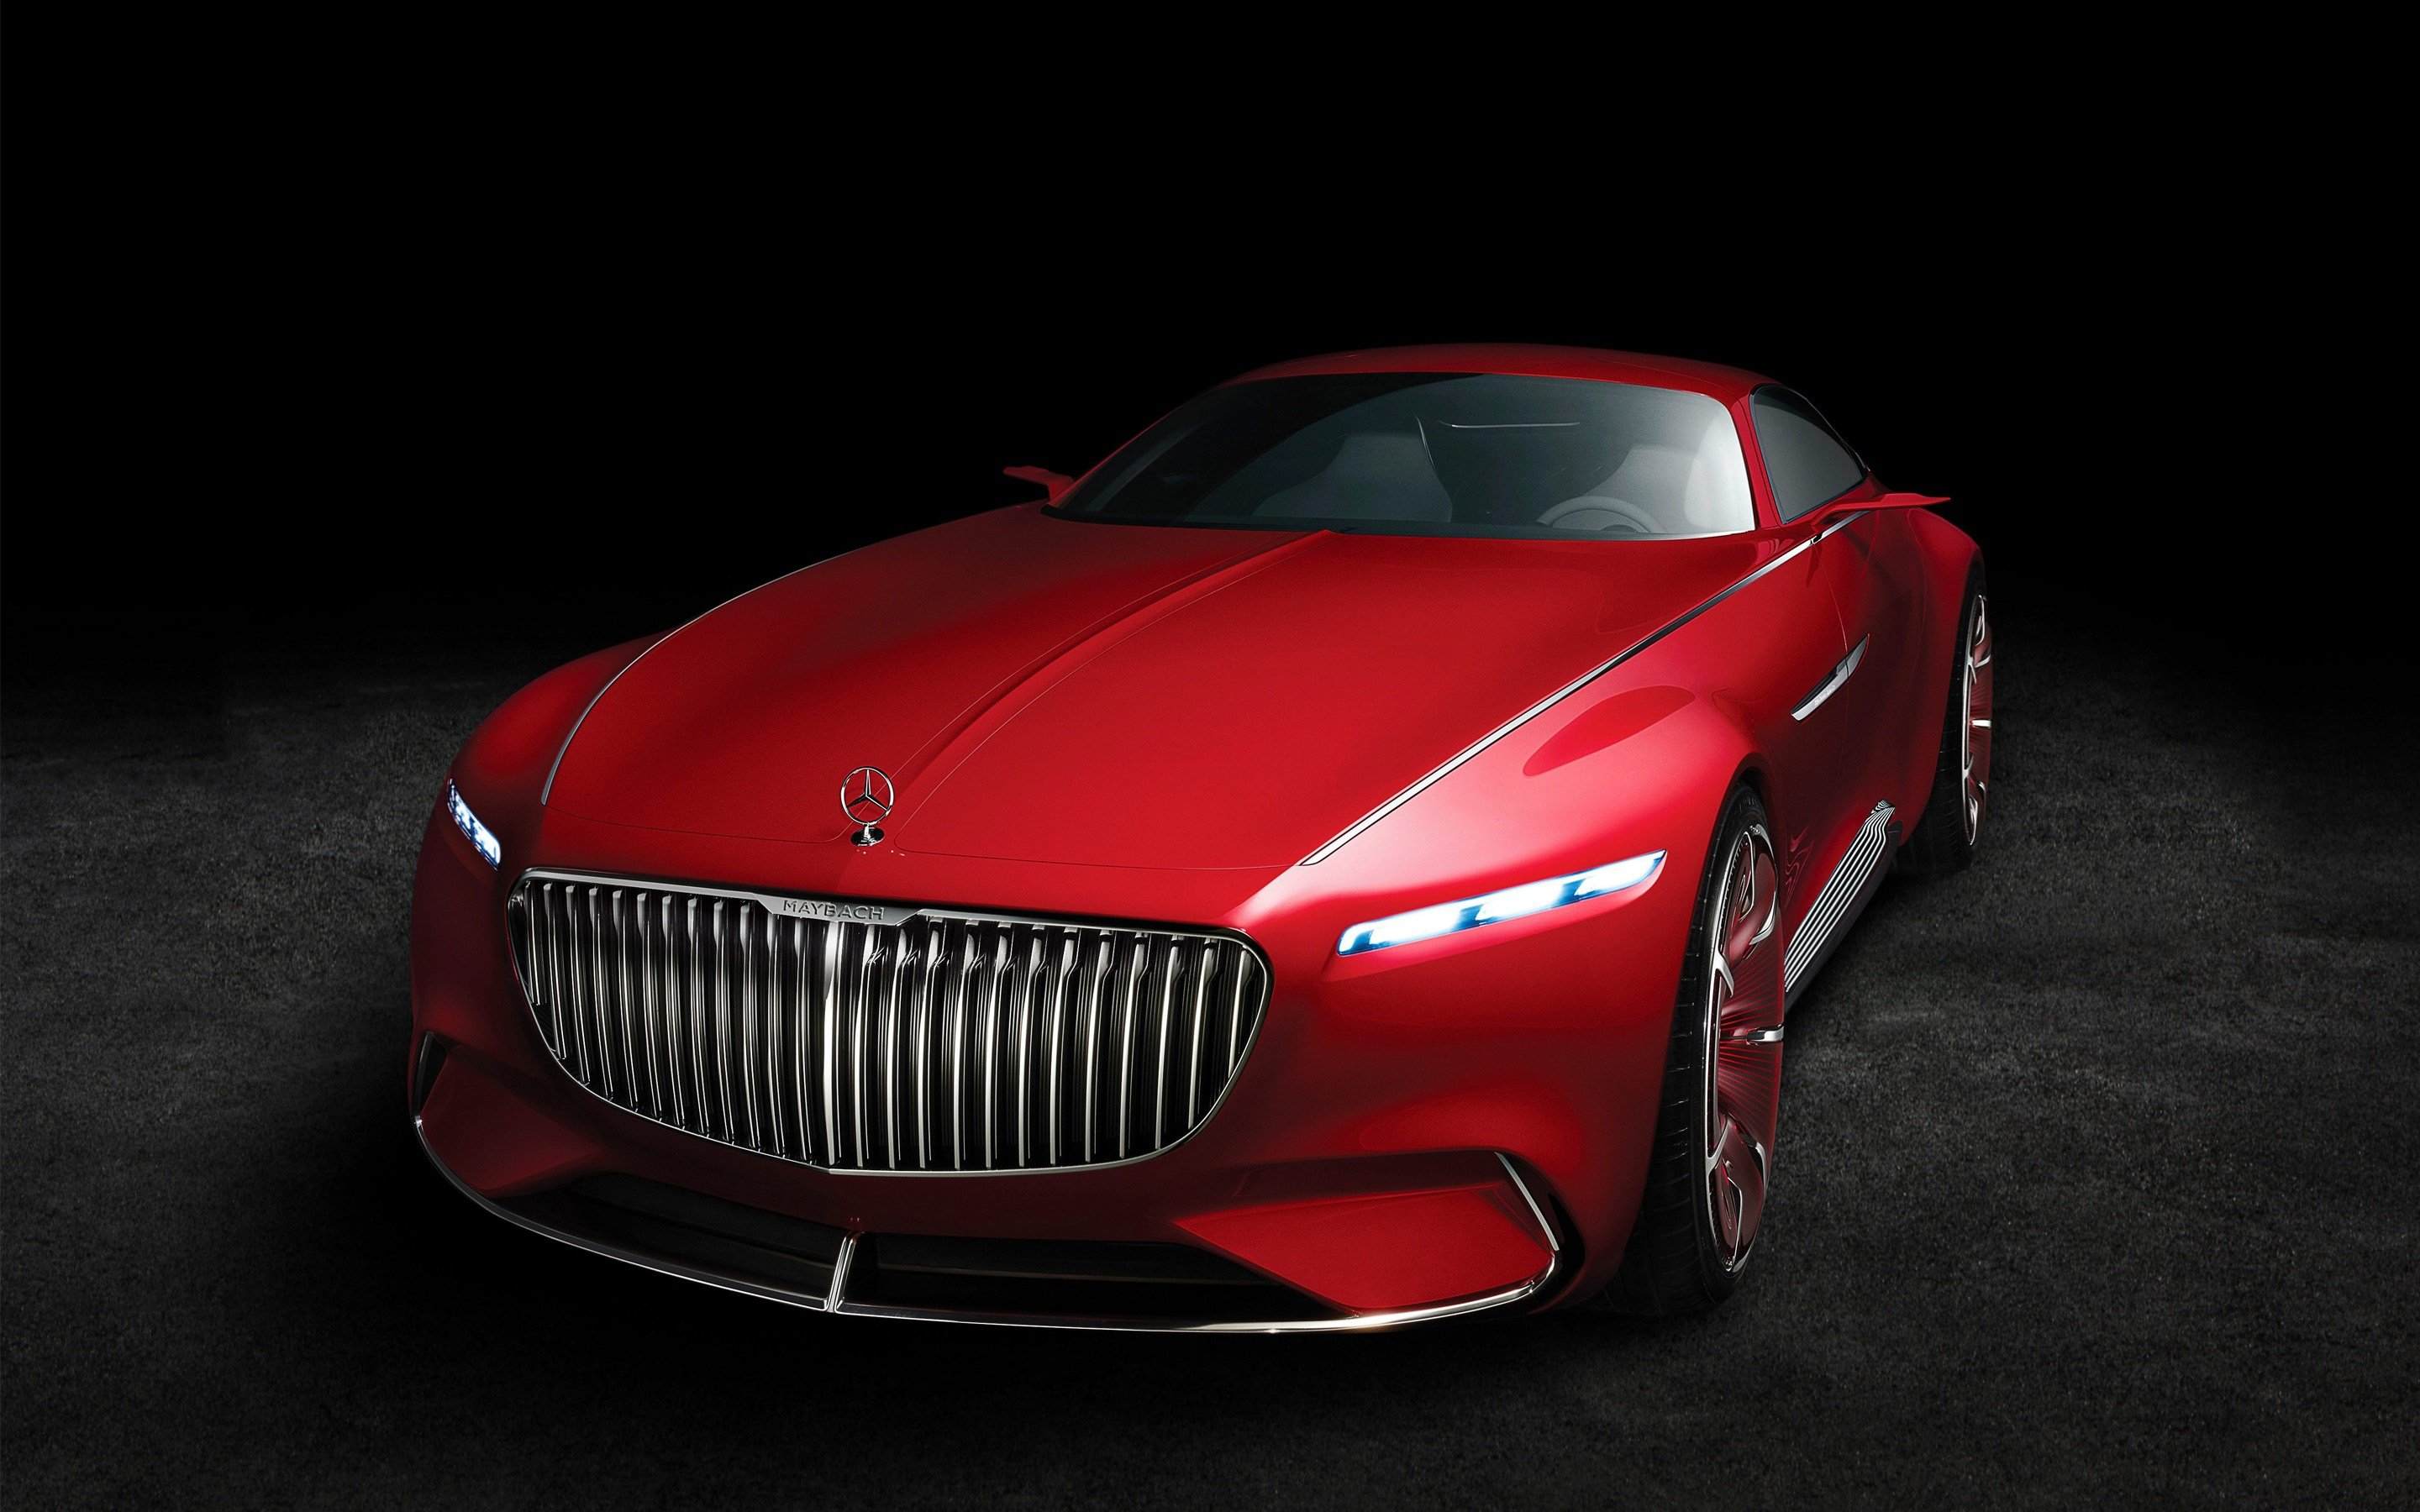 Latest Vision Mercedes Maybach 6 4K Wallpaper Hd Car Wallpapers Free Download